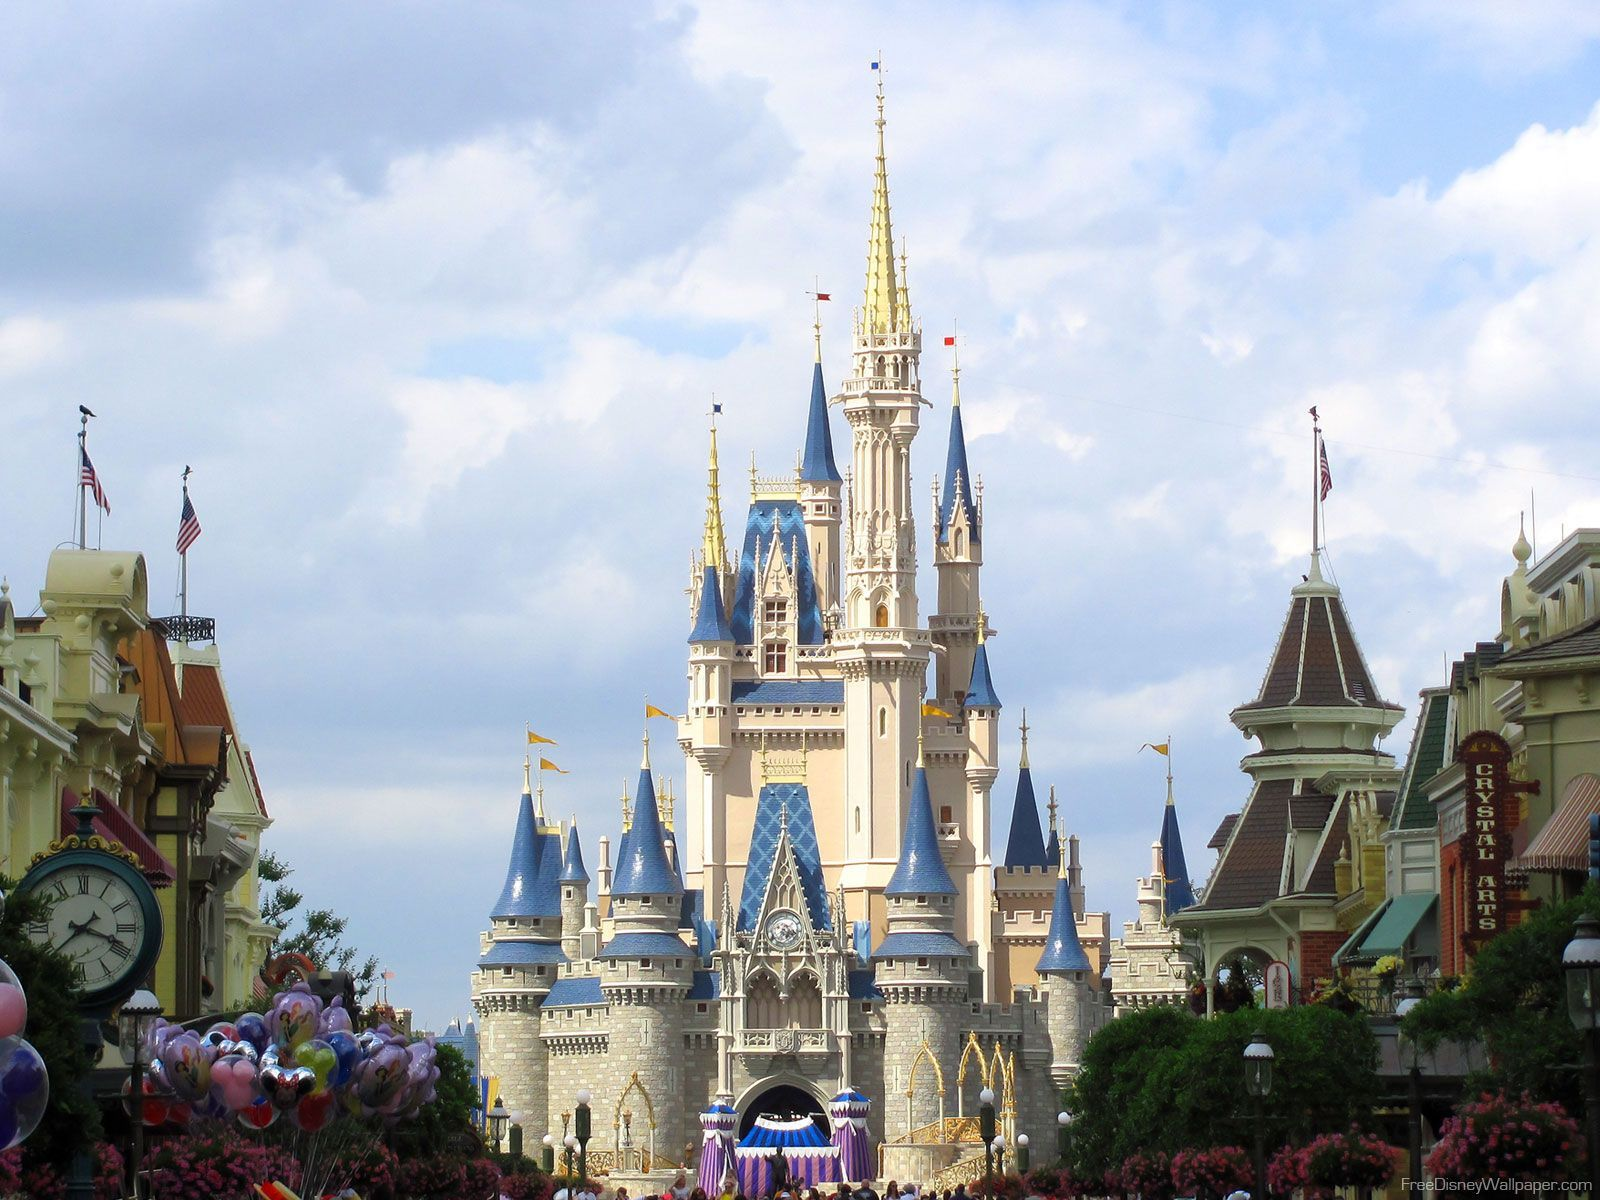 Disney Castle Wallpaper Mobile - Scerbos com